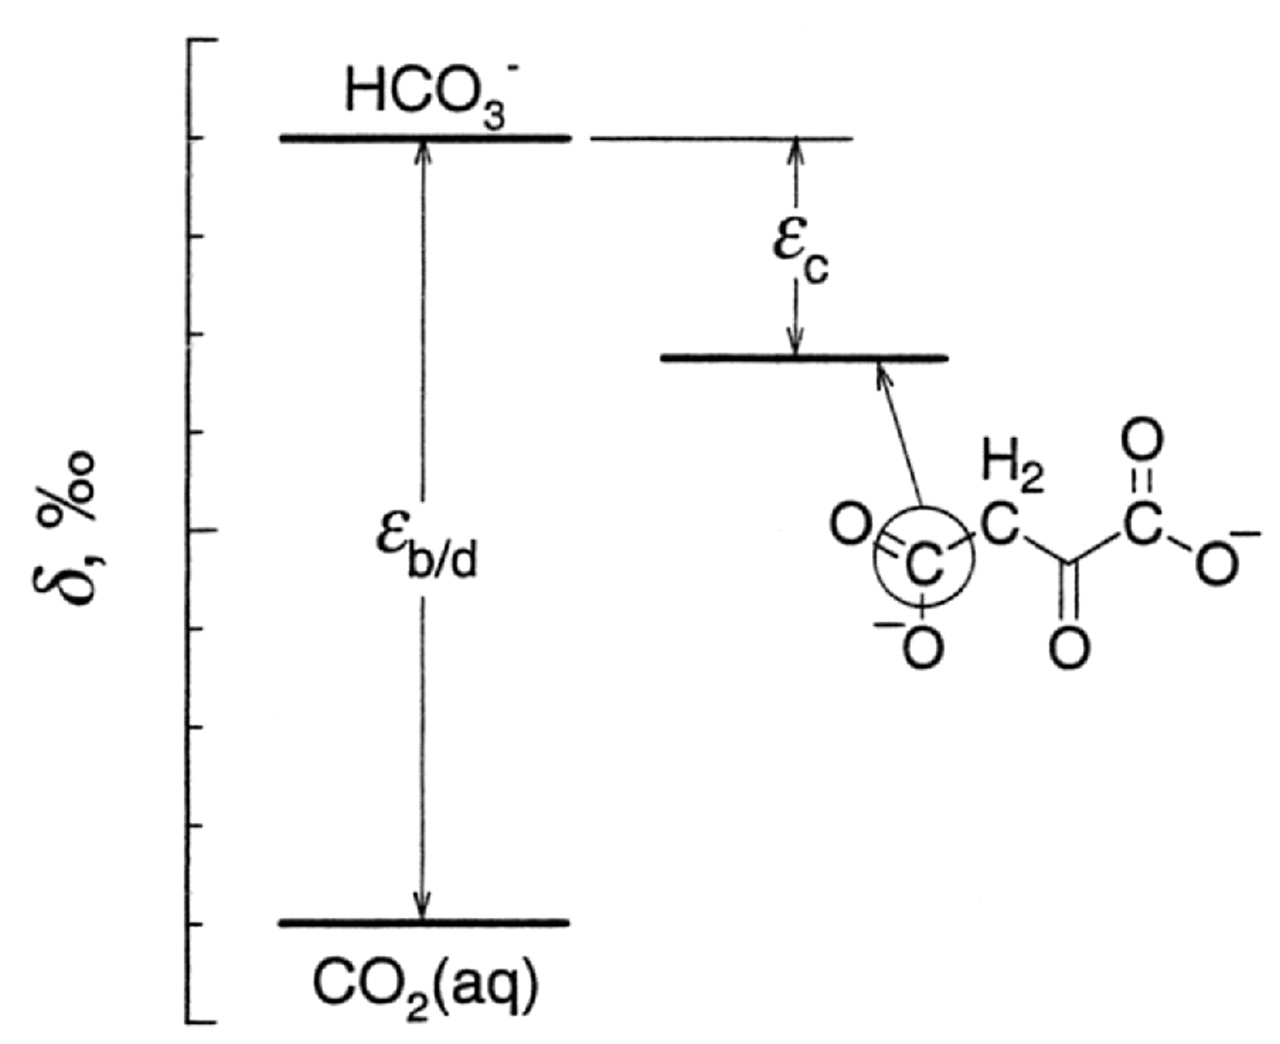 Fractionation Of Carbon And Hydrogen Isotopes In Biosynthetic Schematic Process Dating Tree Rings Using The C14 System View Largedownload Slide